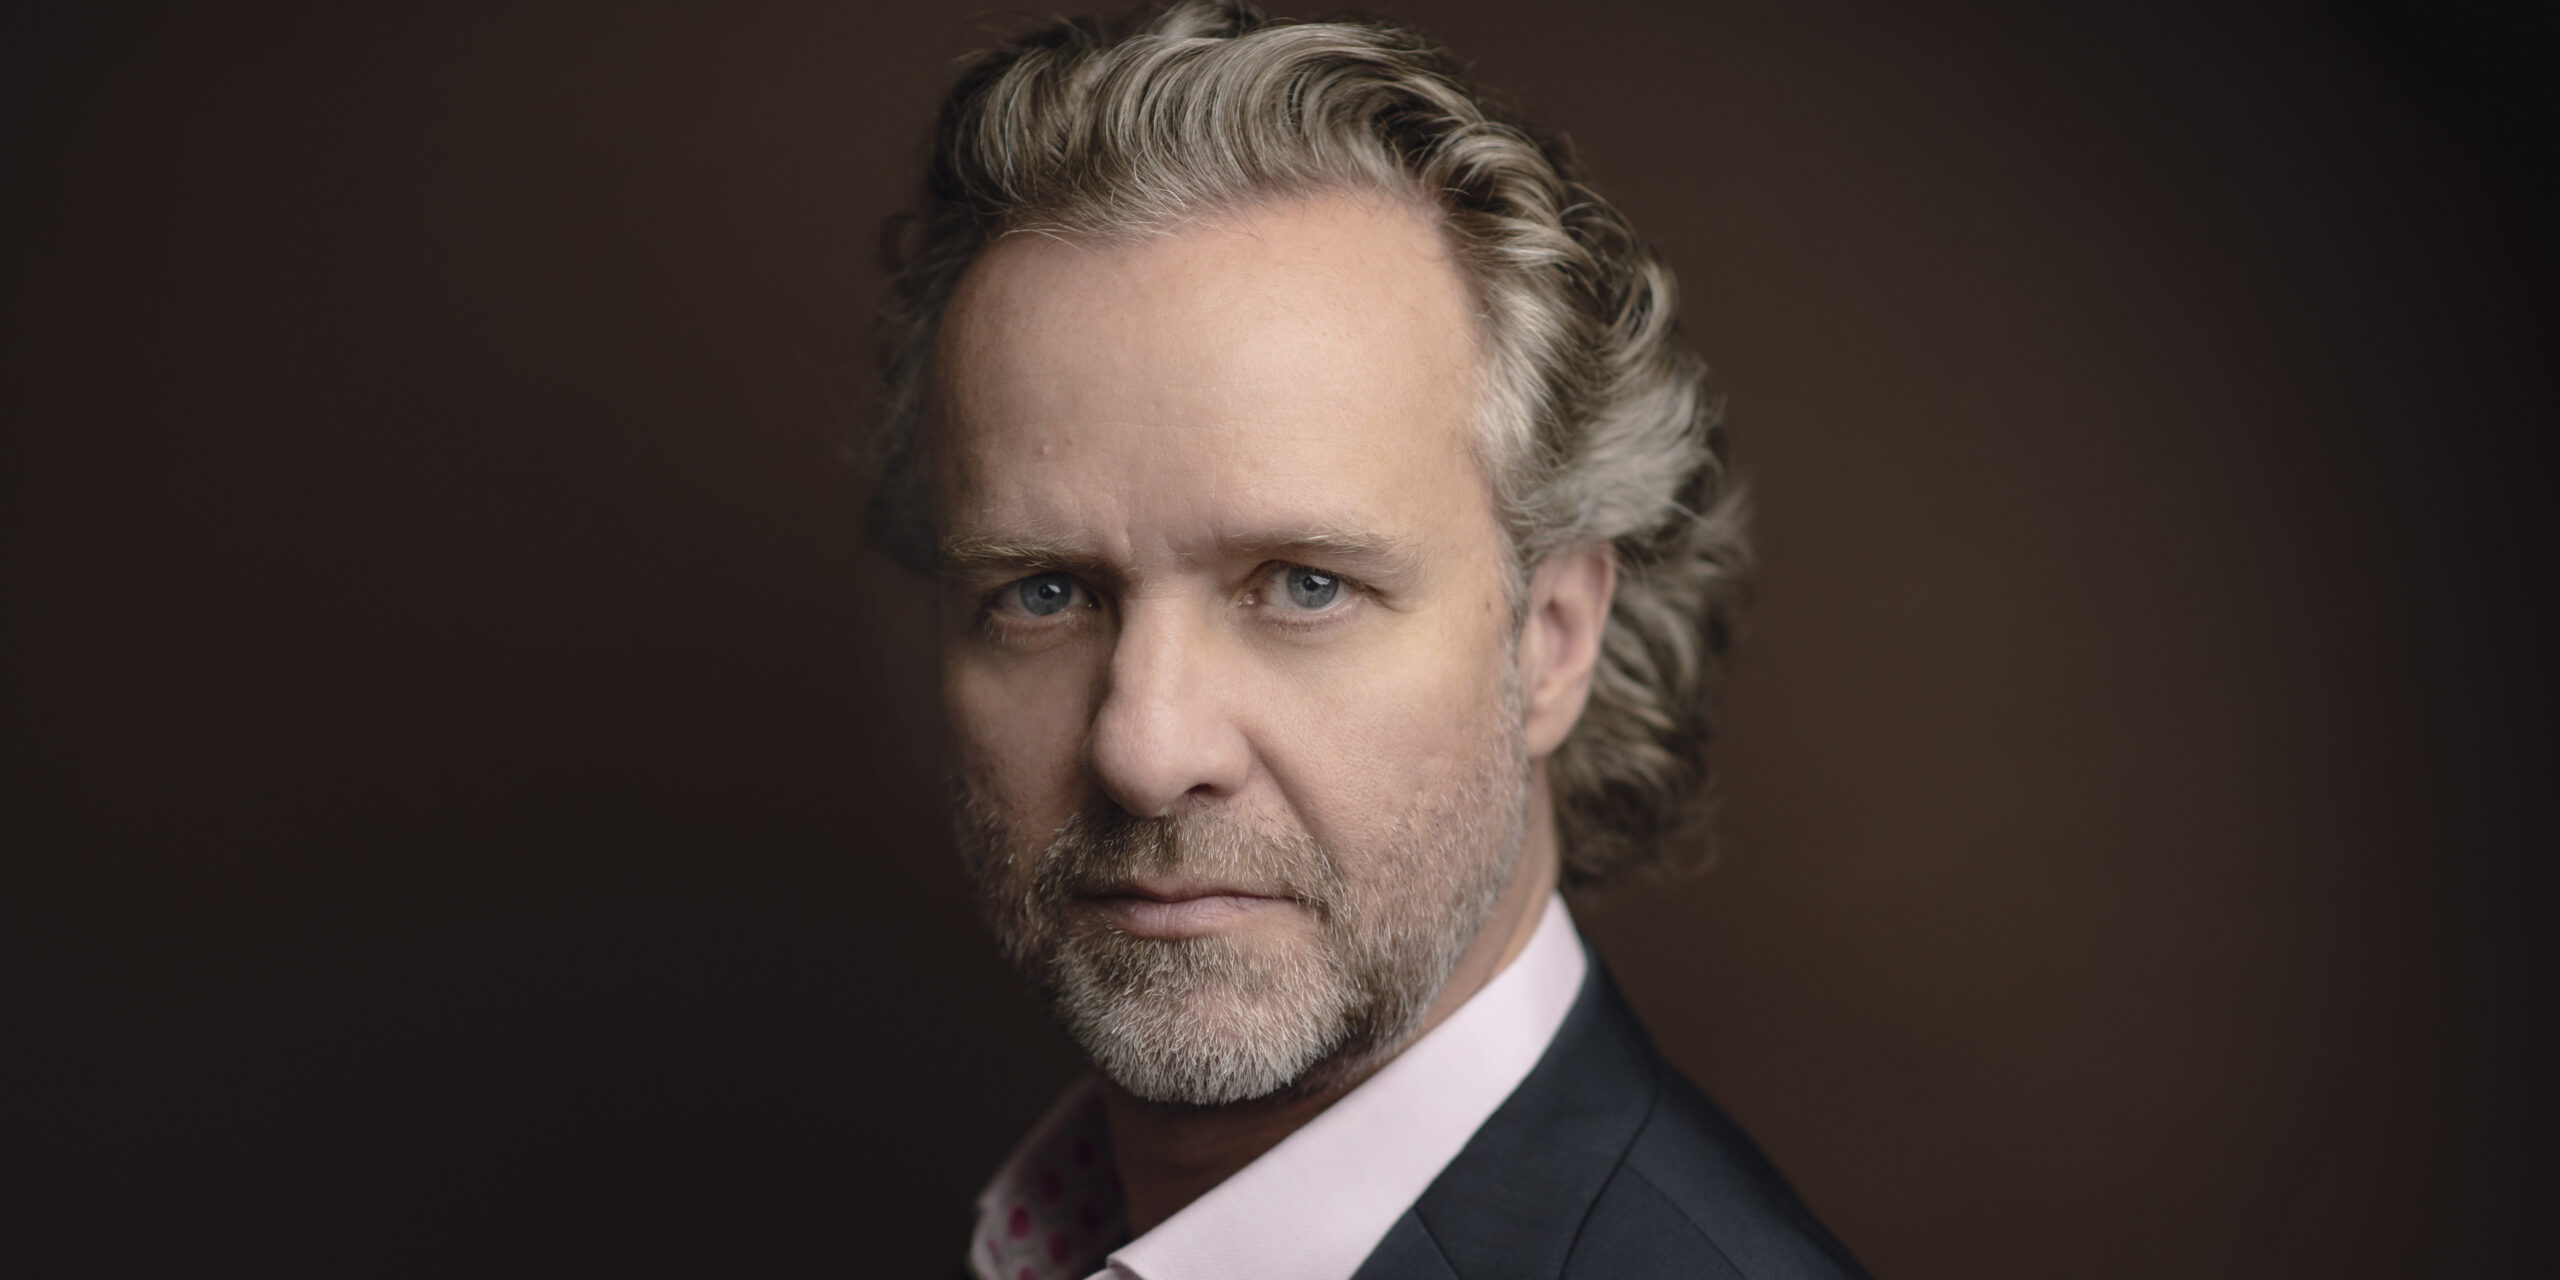 Martin Muehle – New representation in General Management